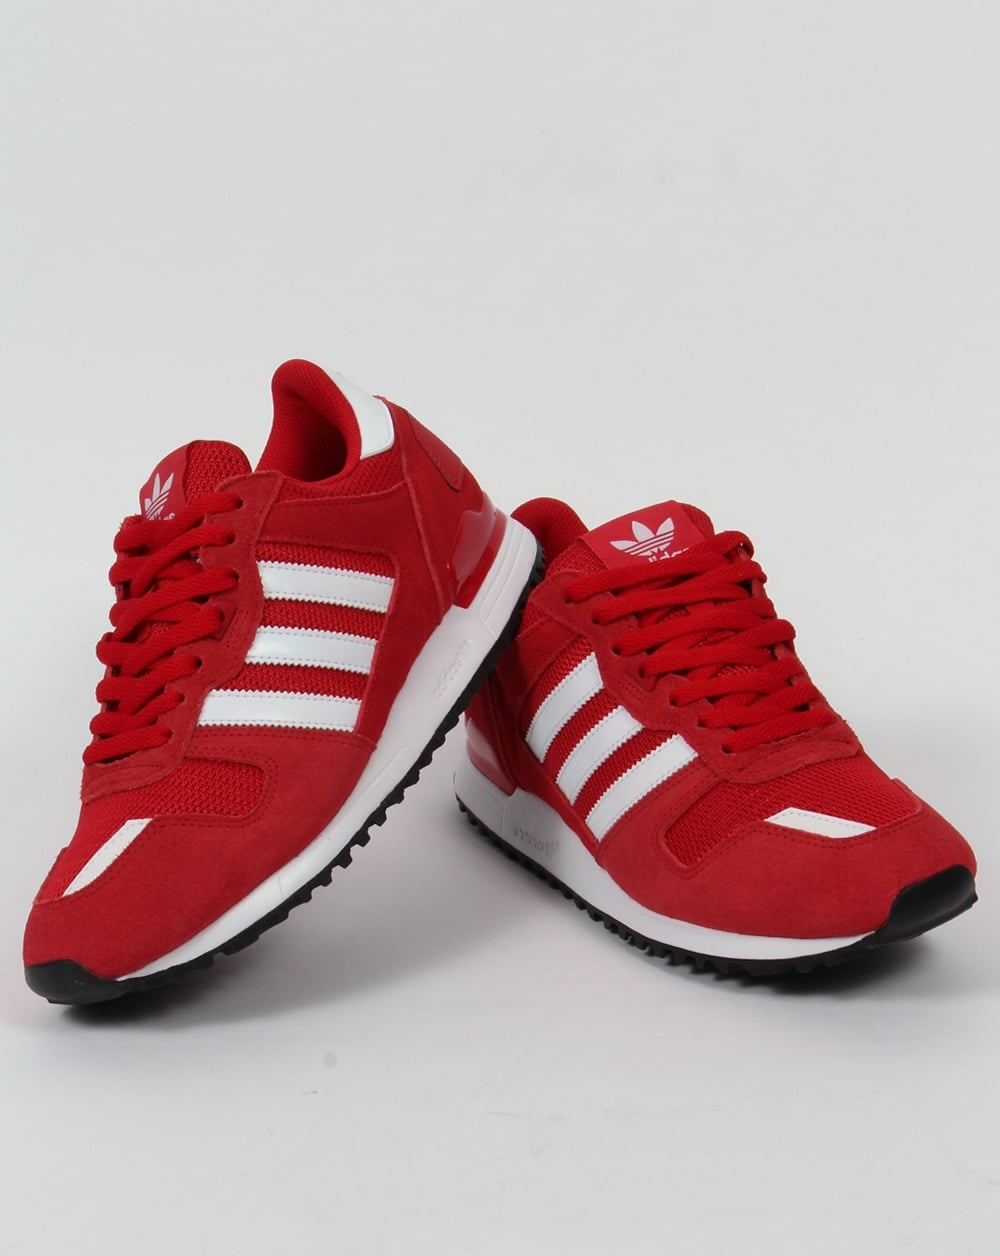 Adidas ZX700 trainers Red, White ,Retro Runners, sneakers